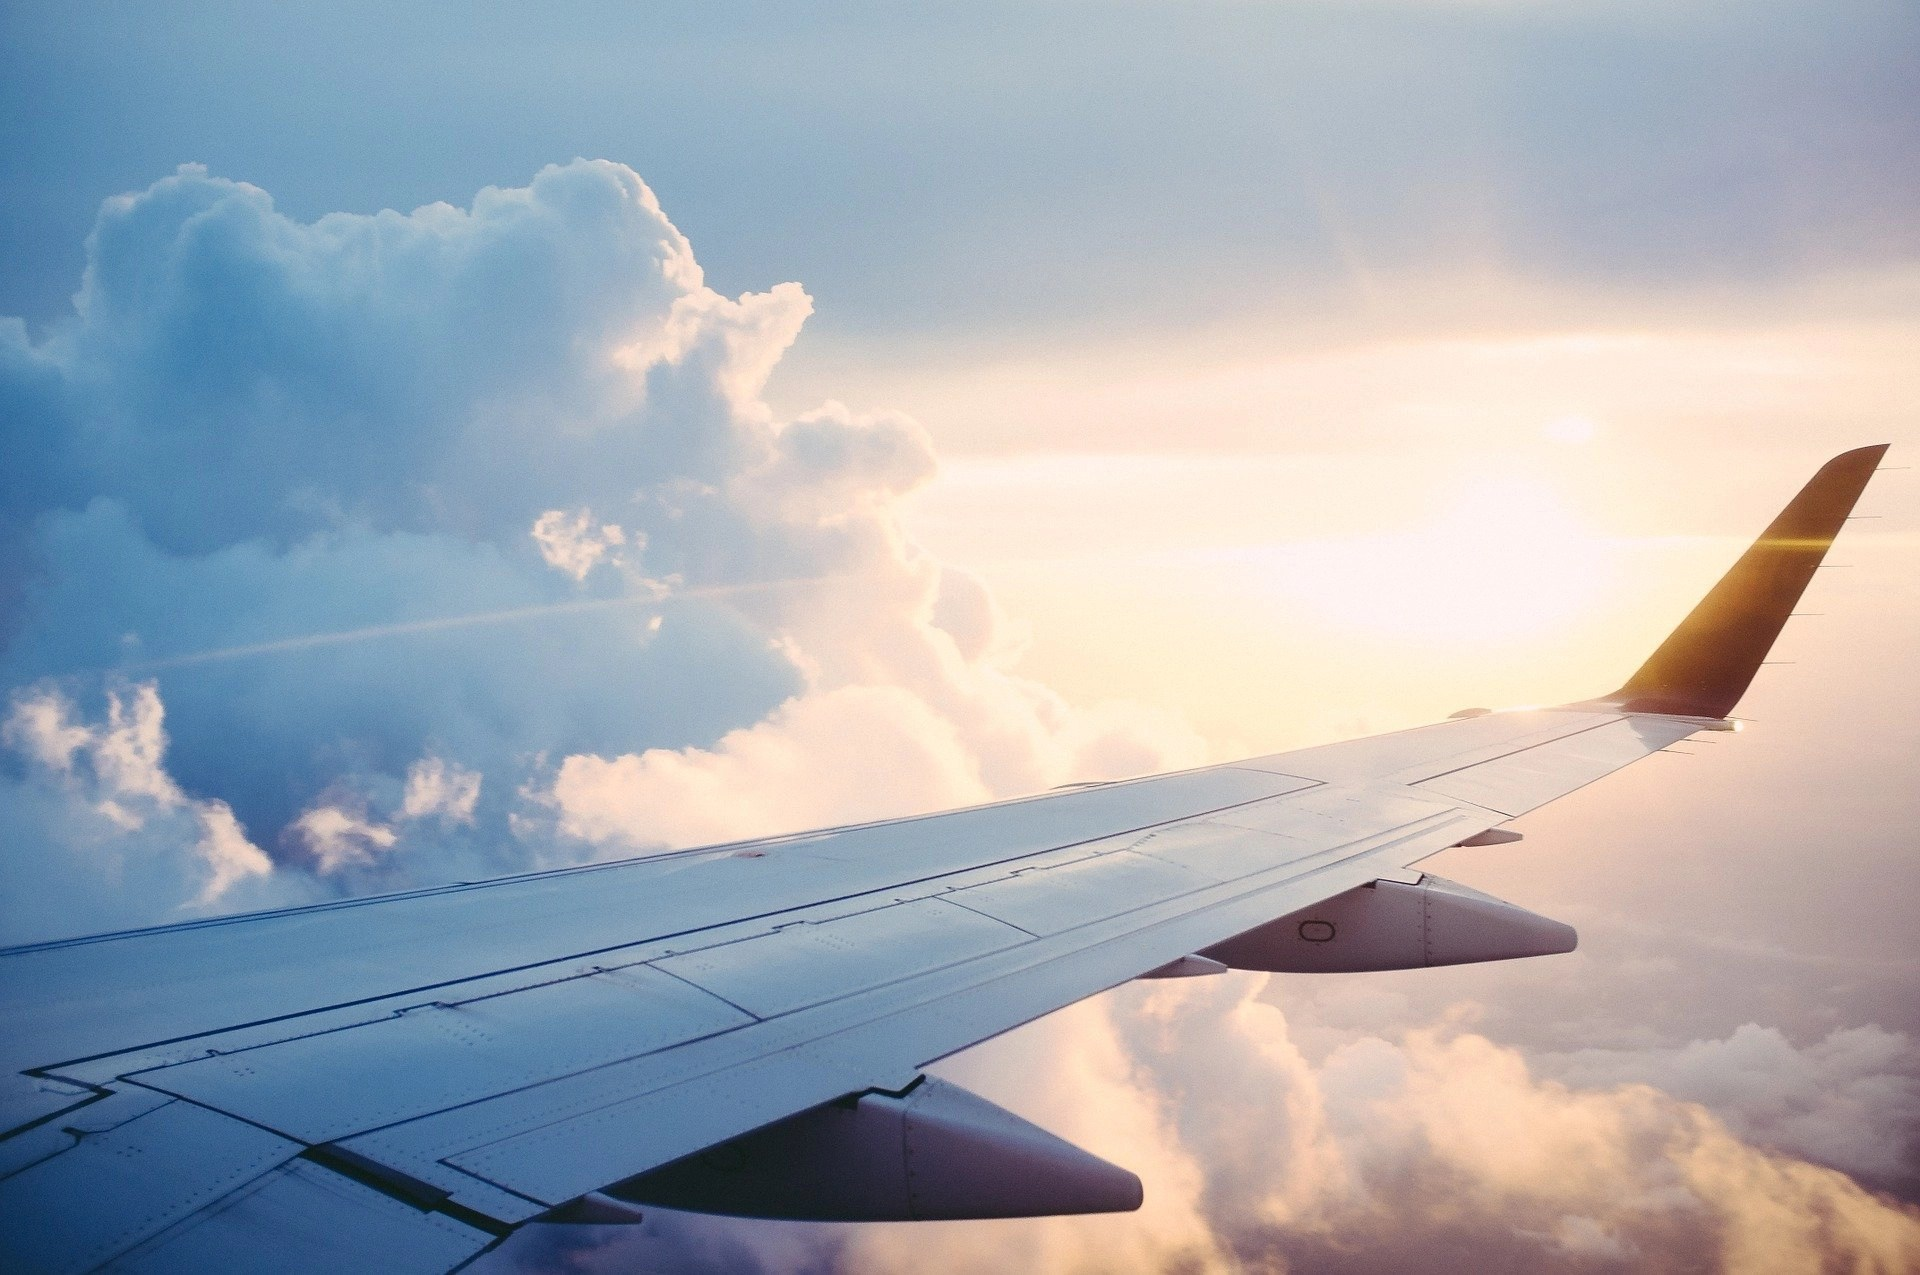 An airplane wing in the sky around clouds and the sun on the horizon. 3 Rules for Planning a Successful Trip Abroad. How to save money and return home after your trip abroad with a smile on your face.